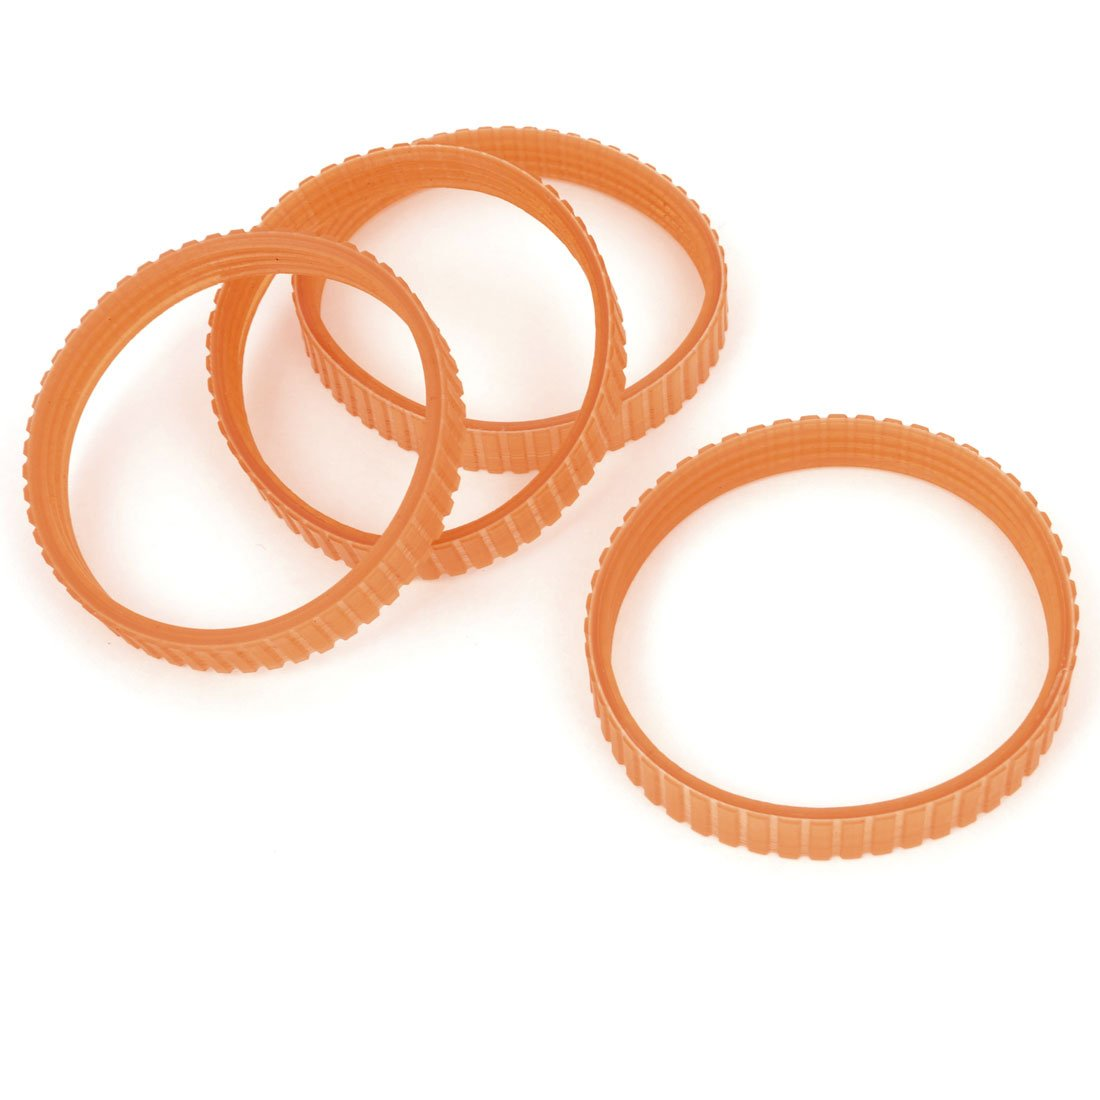 sourcingmap 4 Pcs Orange Rubber Electric Planer Power Tool Electric Cutting Machine Spare Part Driving Belt 225mm Girth a14050800ux0054